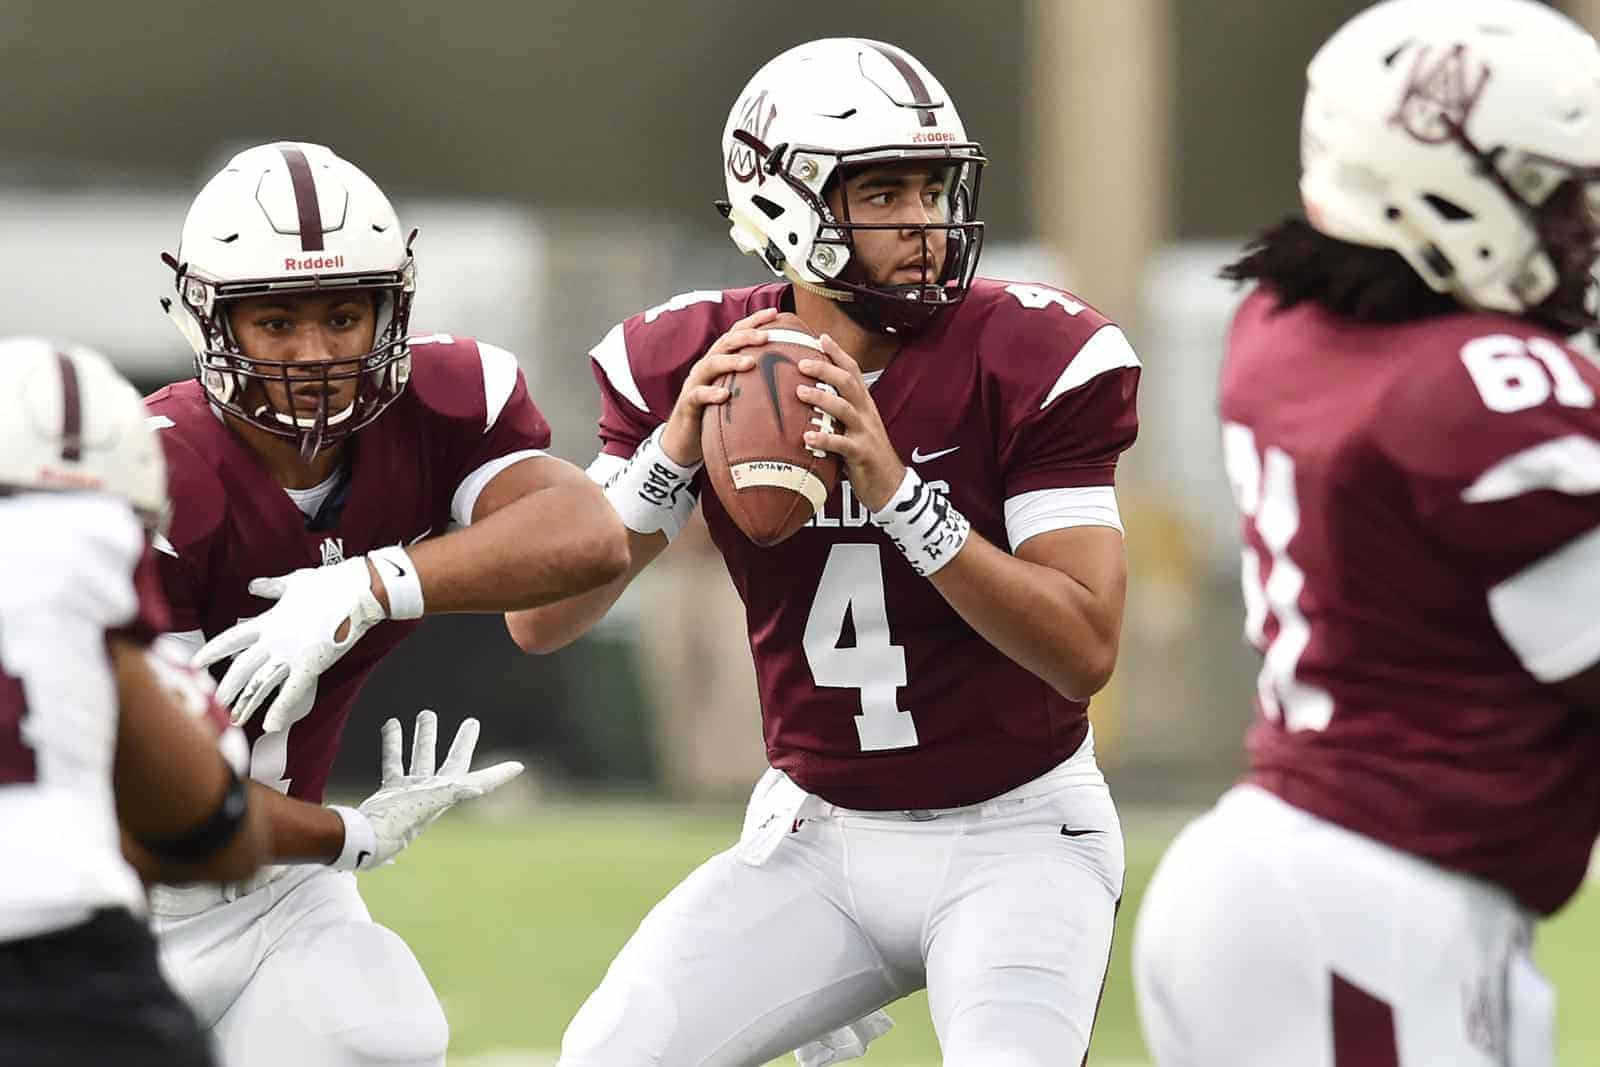 Five HBCU 2021 NFL Draft prospects that could make waves this fall